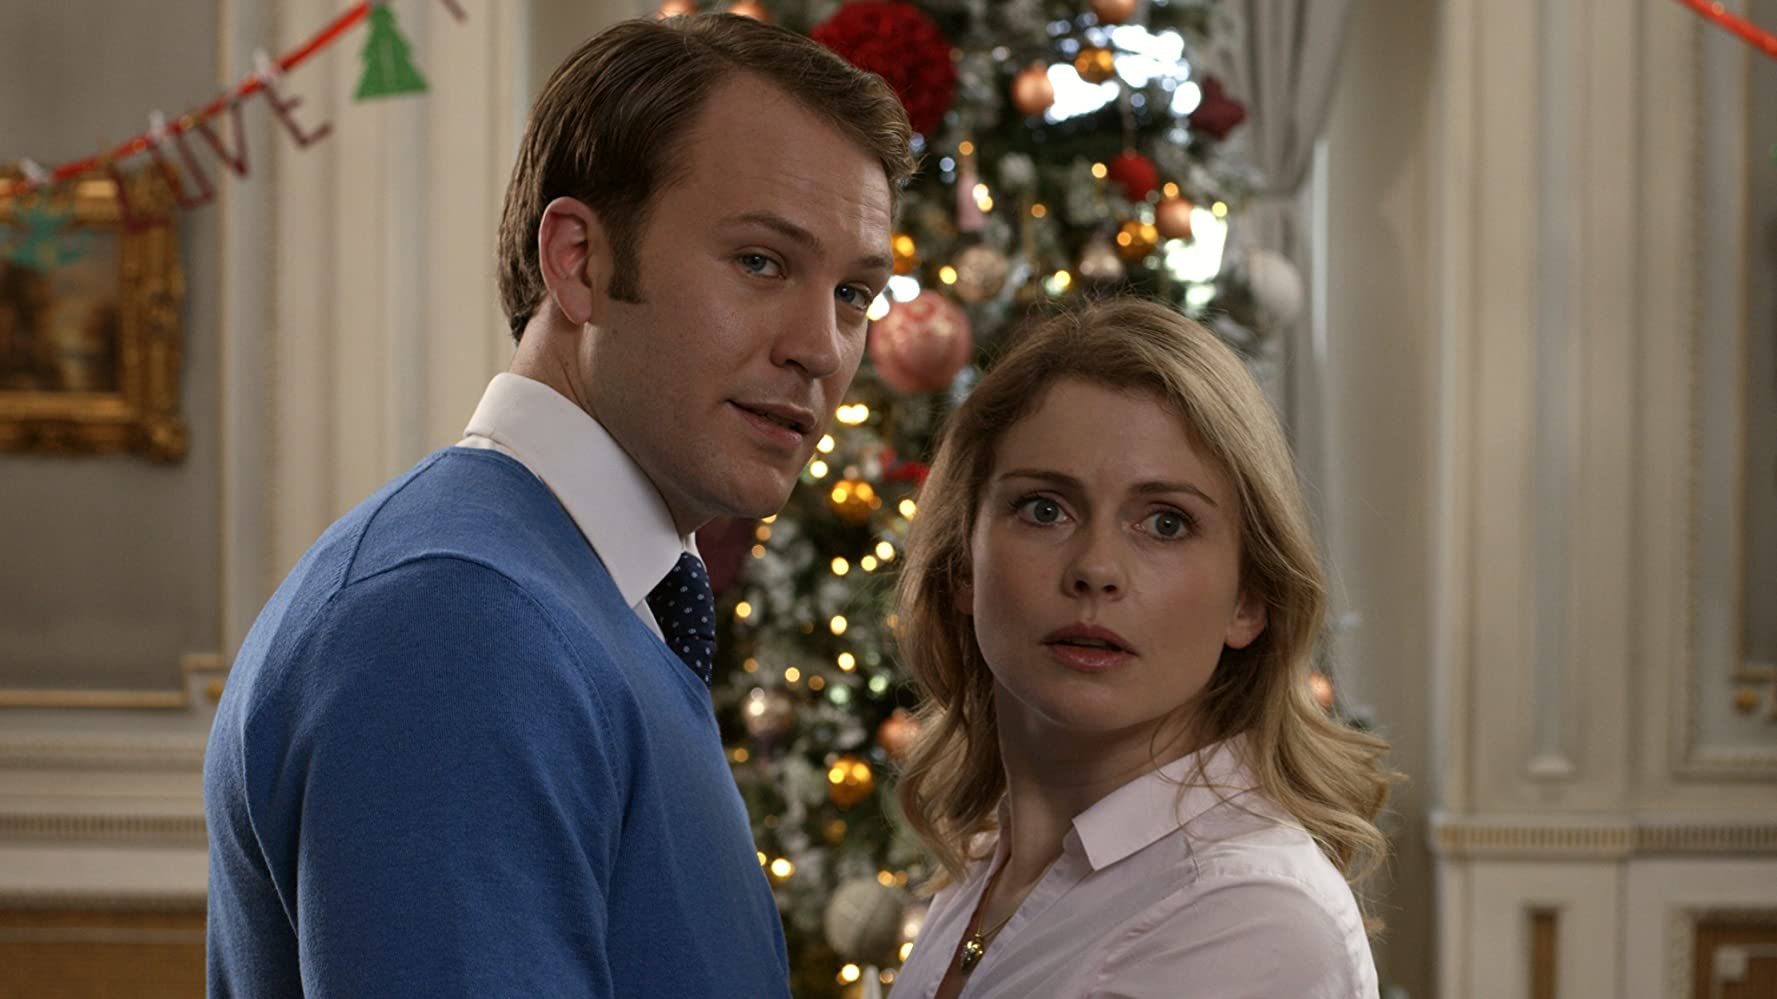 Rose McIver and Ben Lamb in A Christmas Prince: The Royal Wedding (2018)